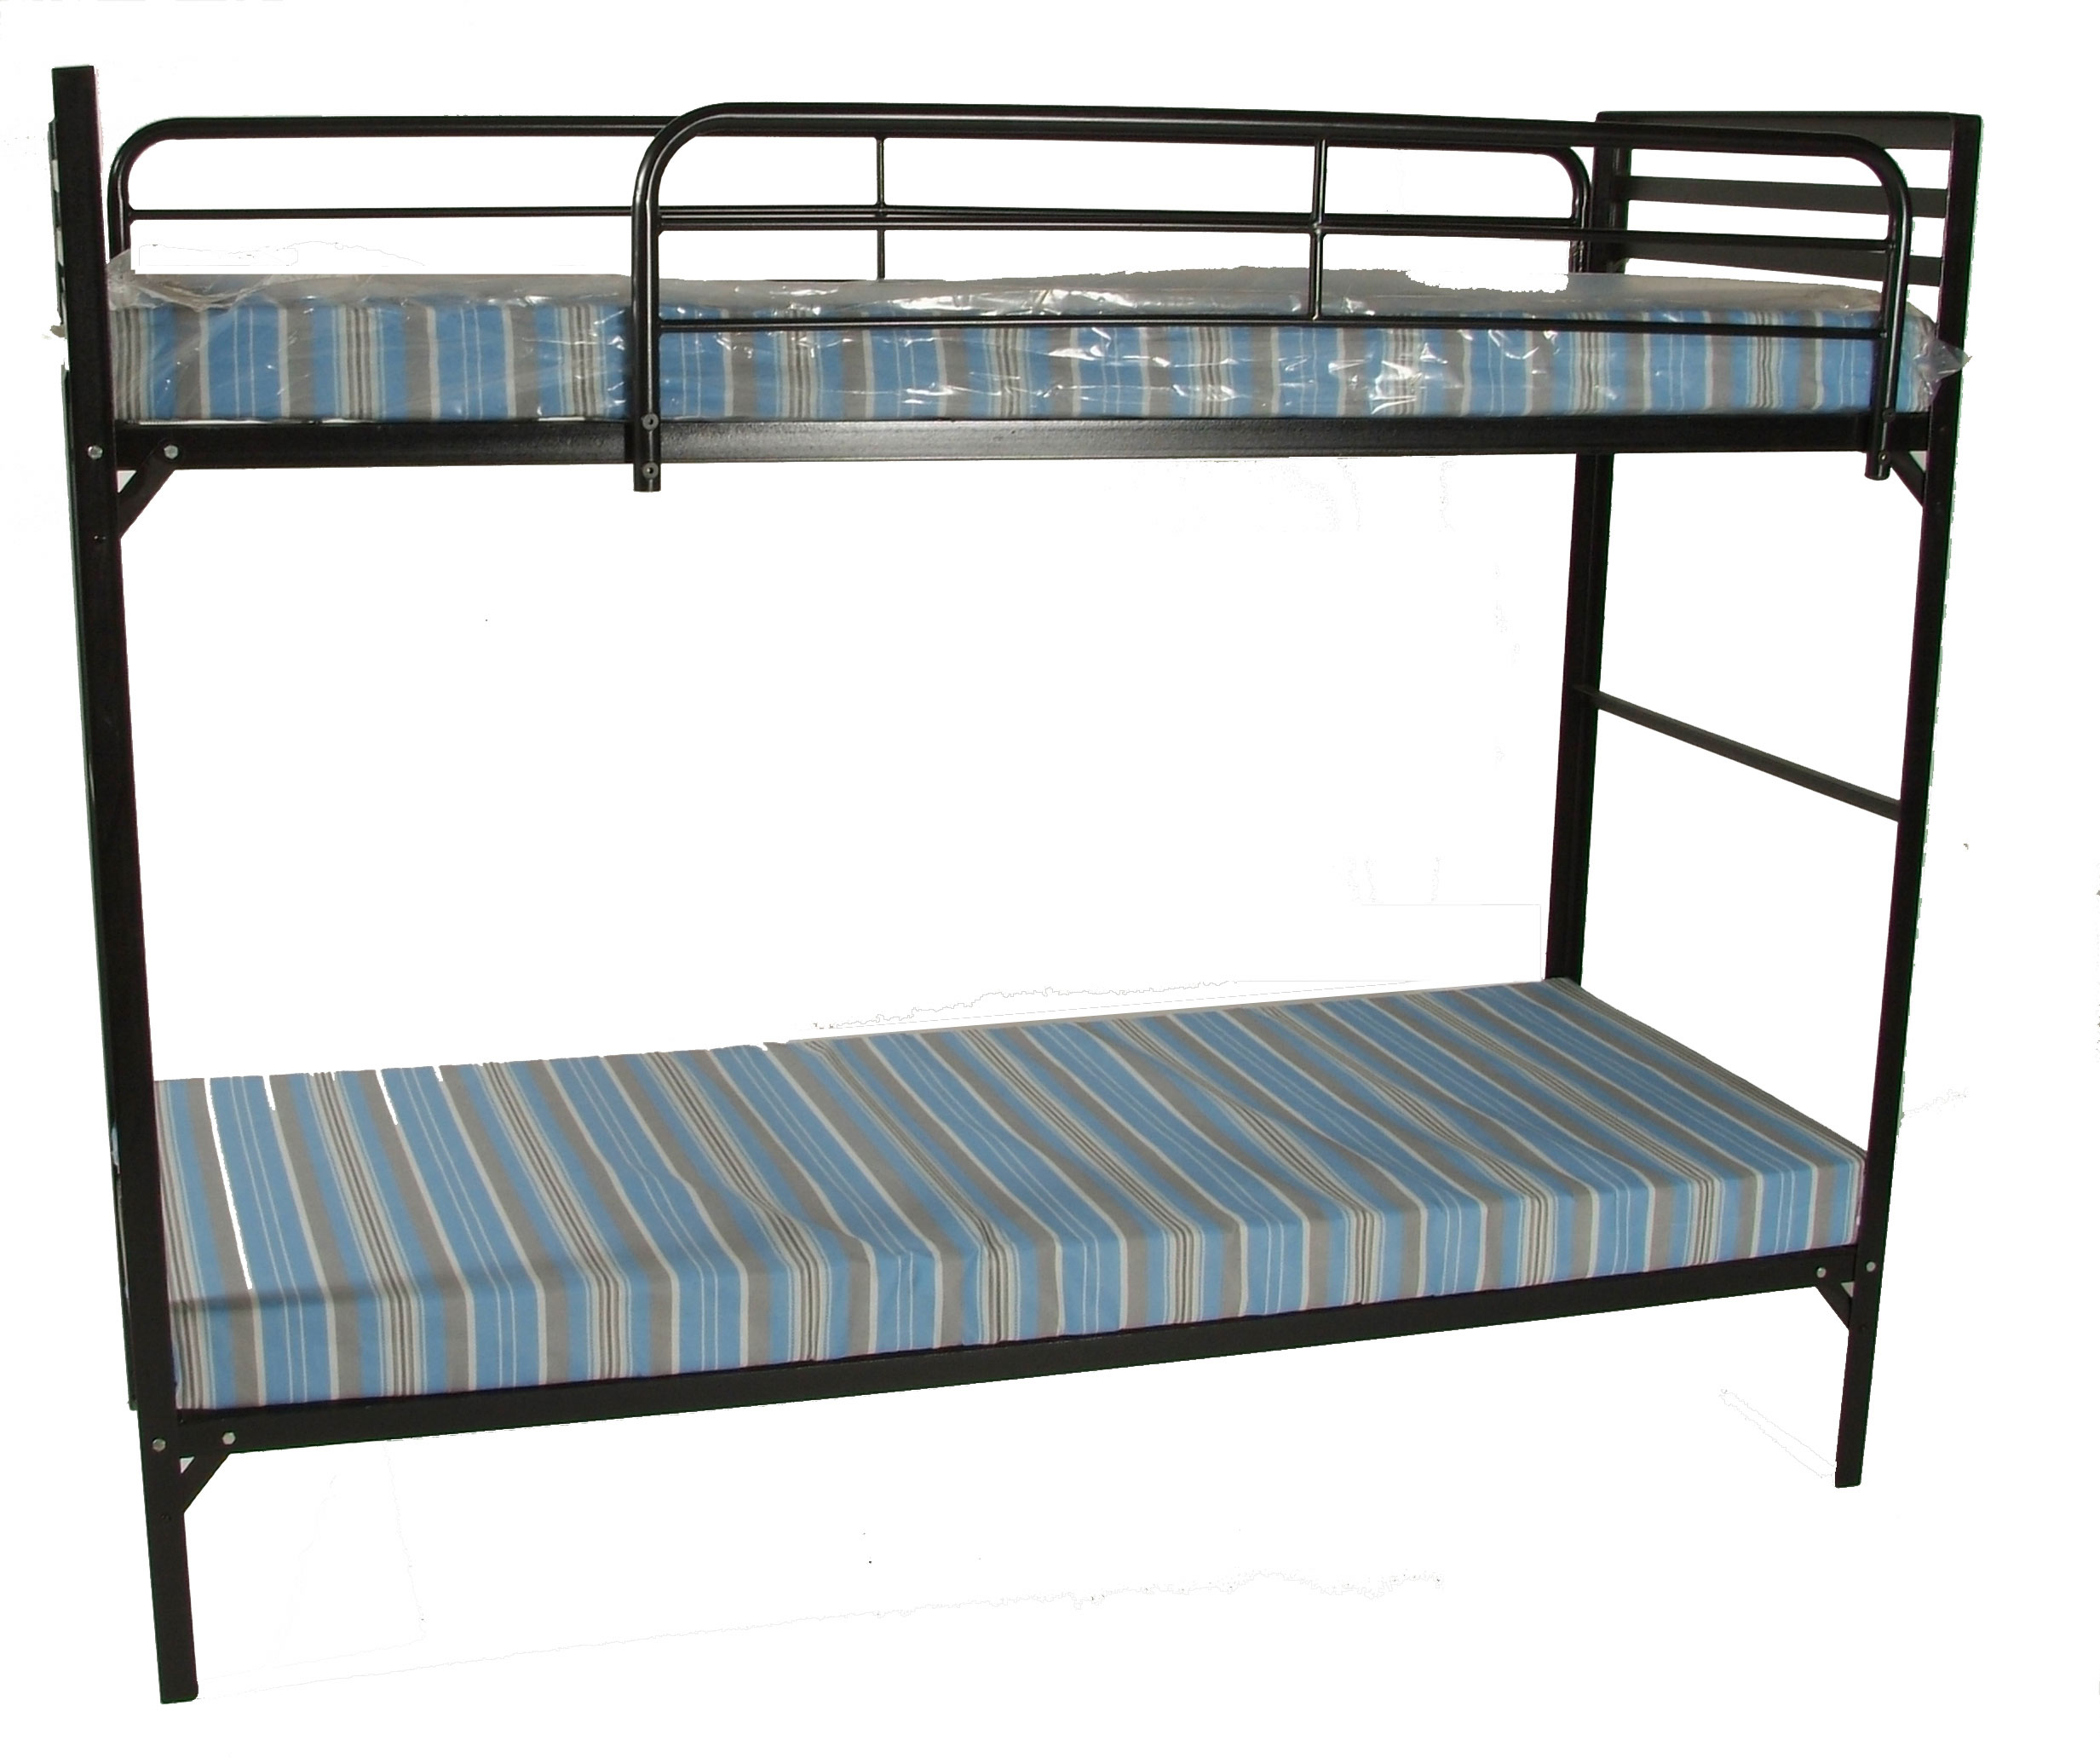 blantex camp style institutional bunk beds w mattress. Black Bedroom Furniture Sets. Home Design Ideas